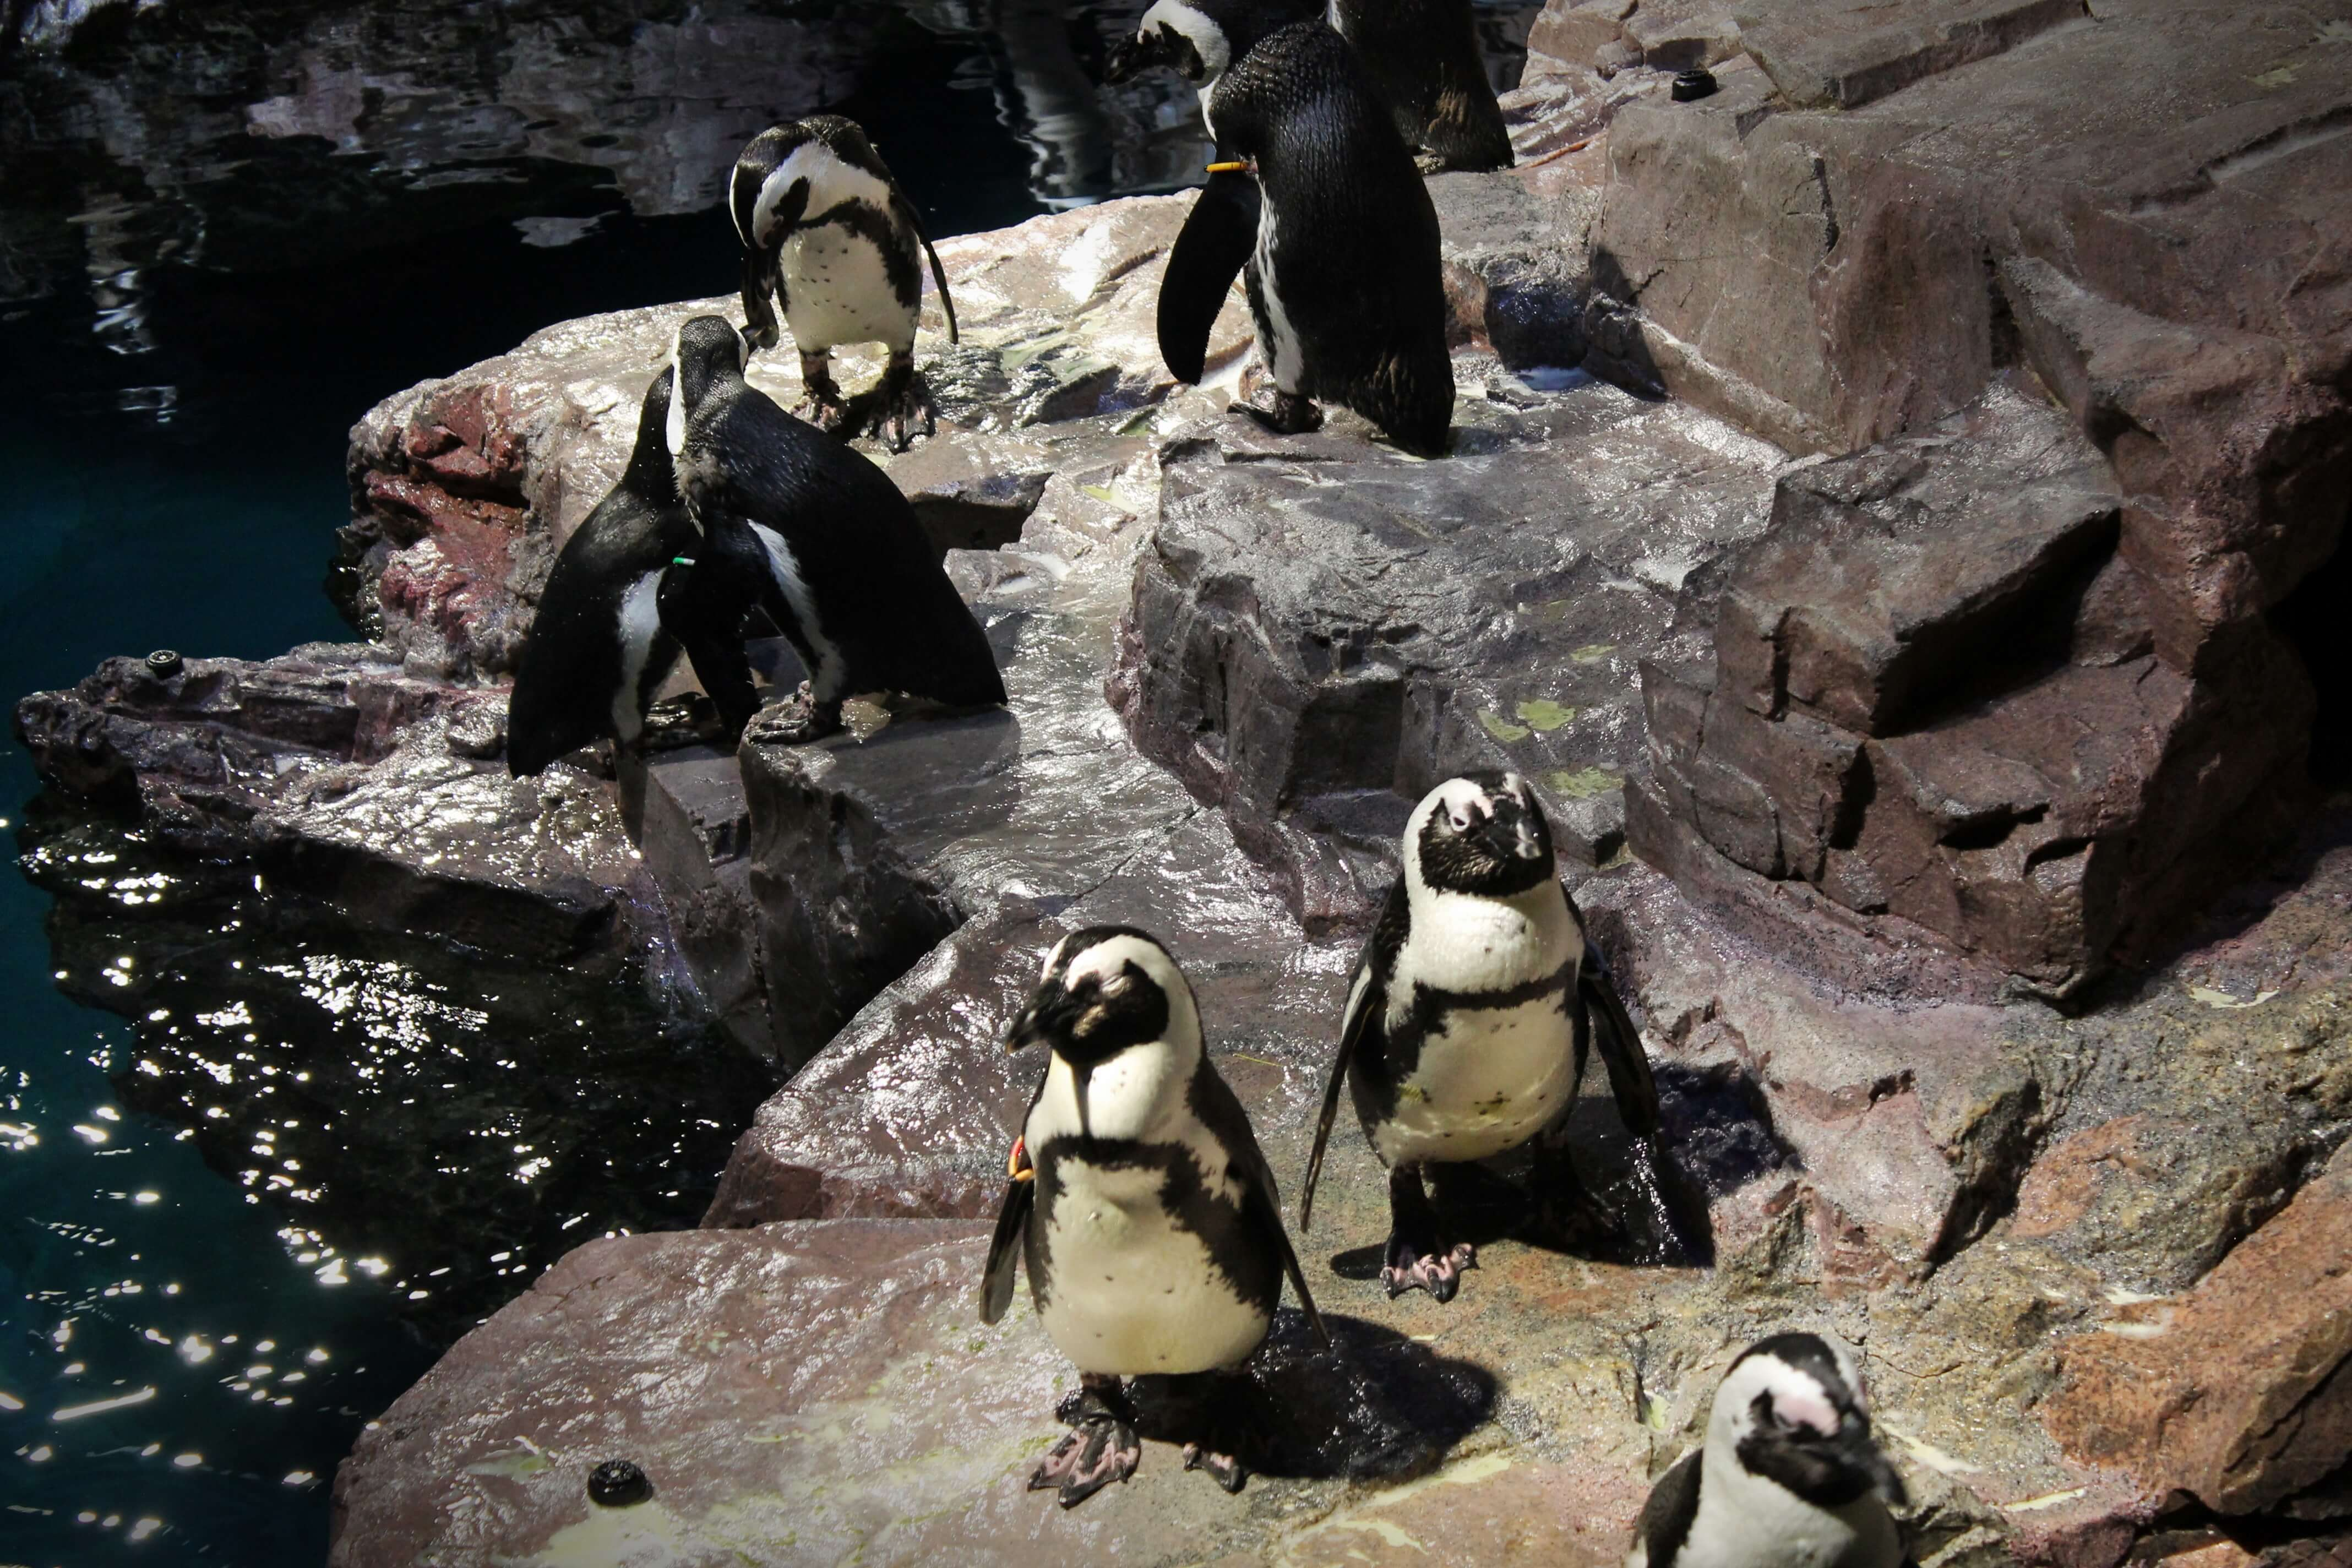 The New England Aquarium | Kicking Back the Pebbles